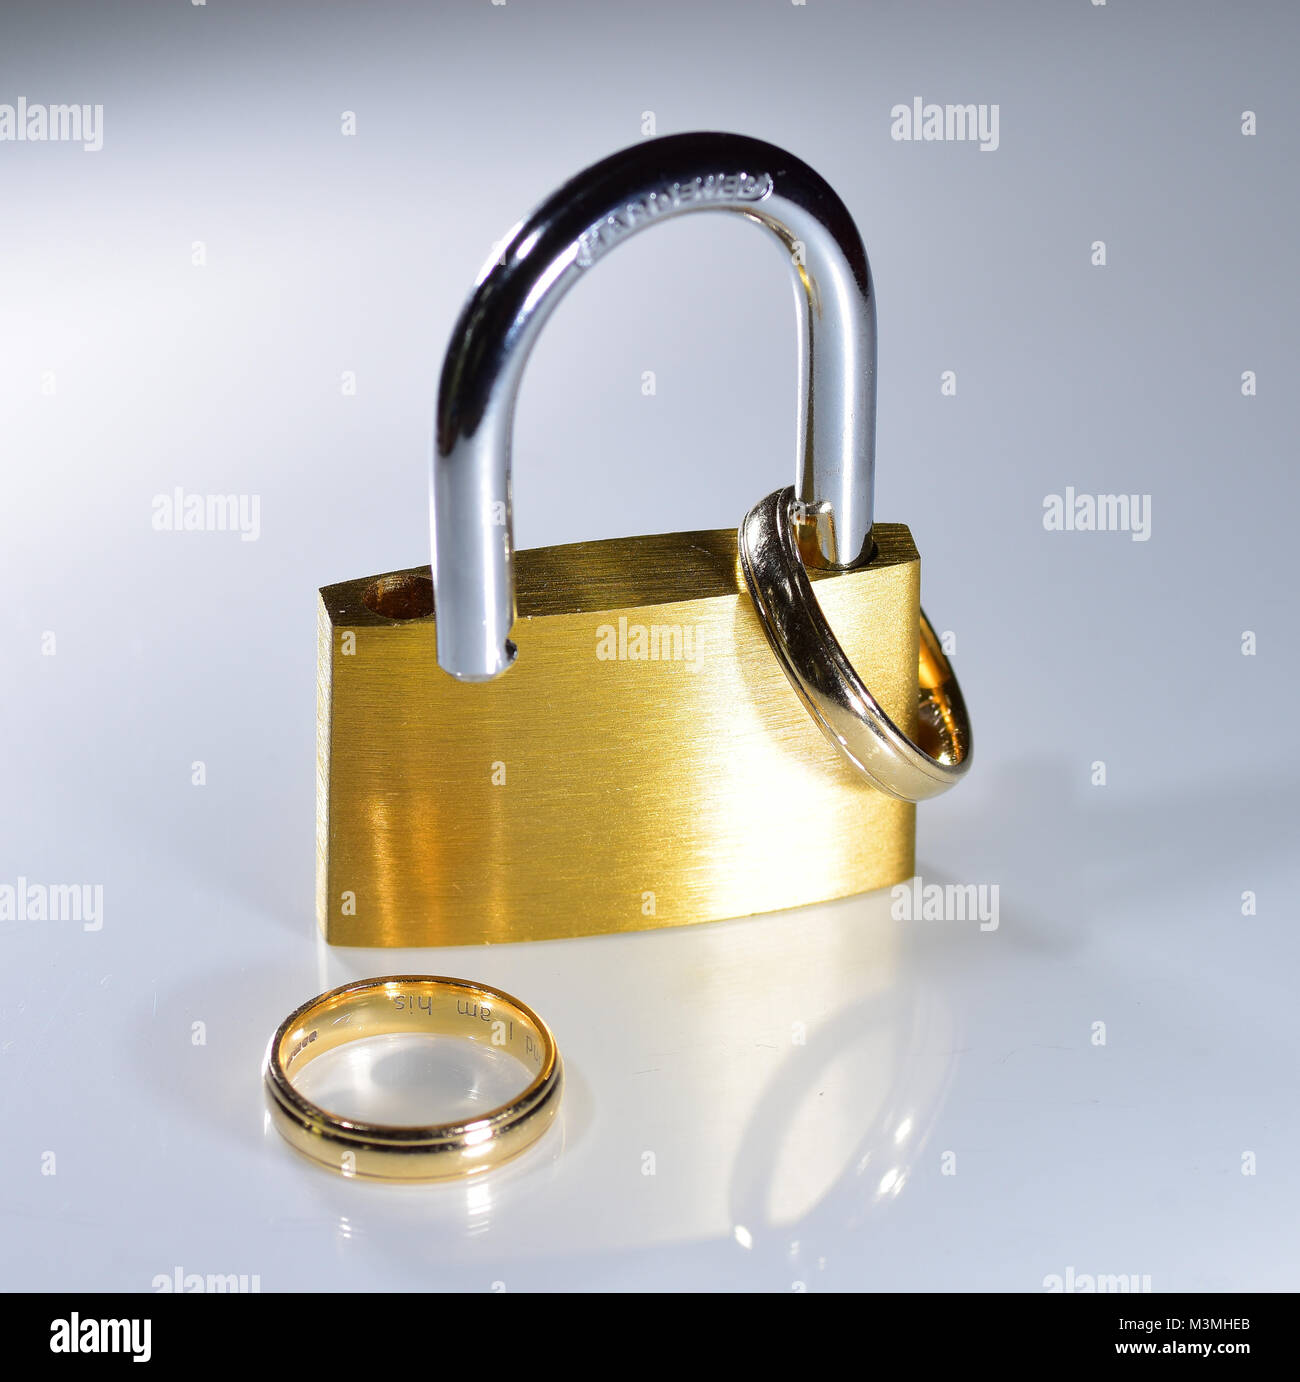 free photography devotion gold of wedding royalty download illustration stock rings broken